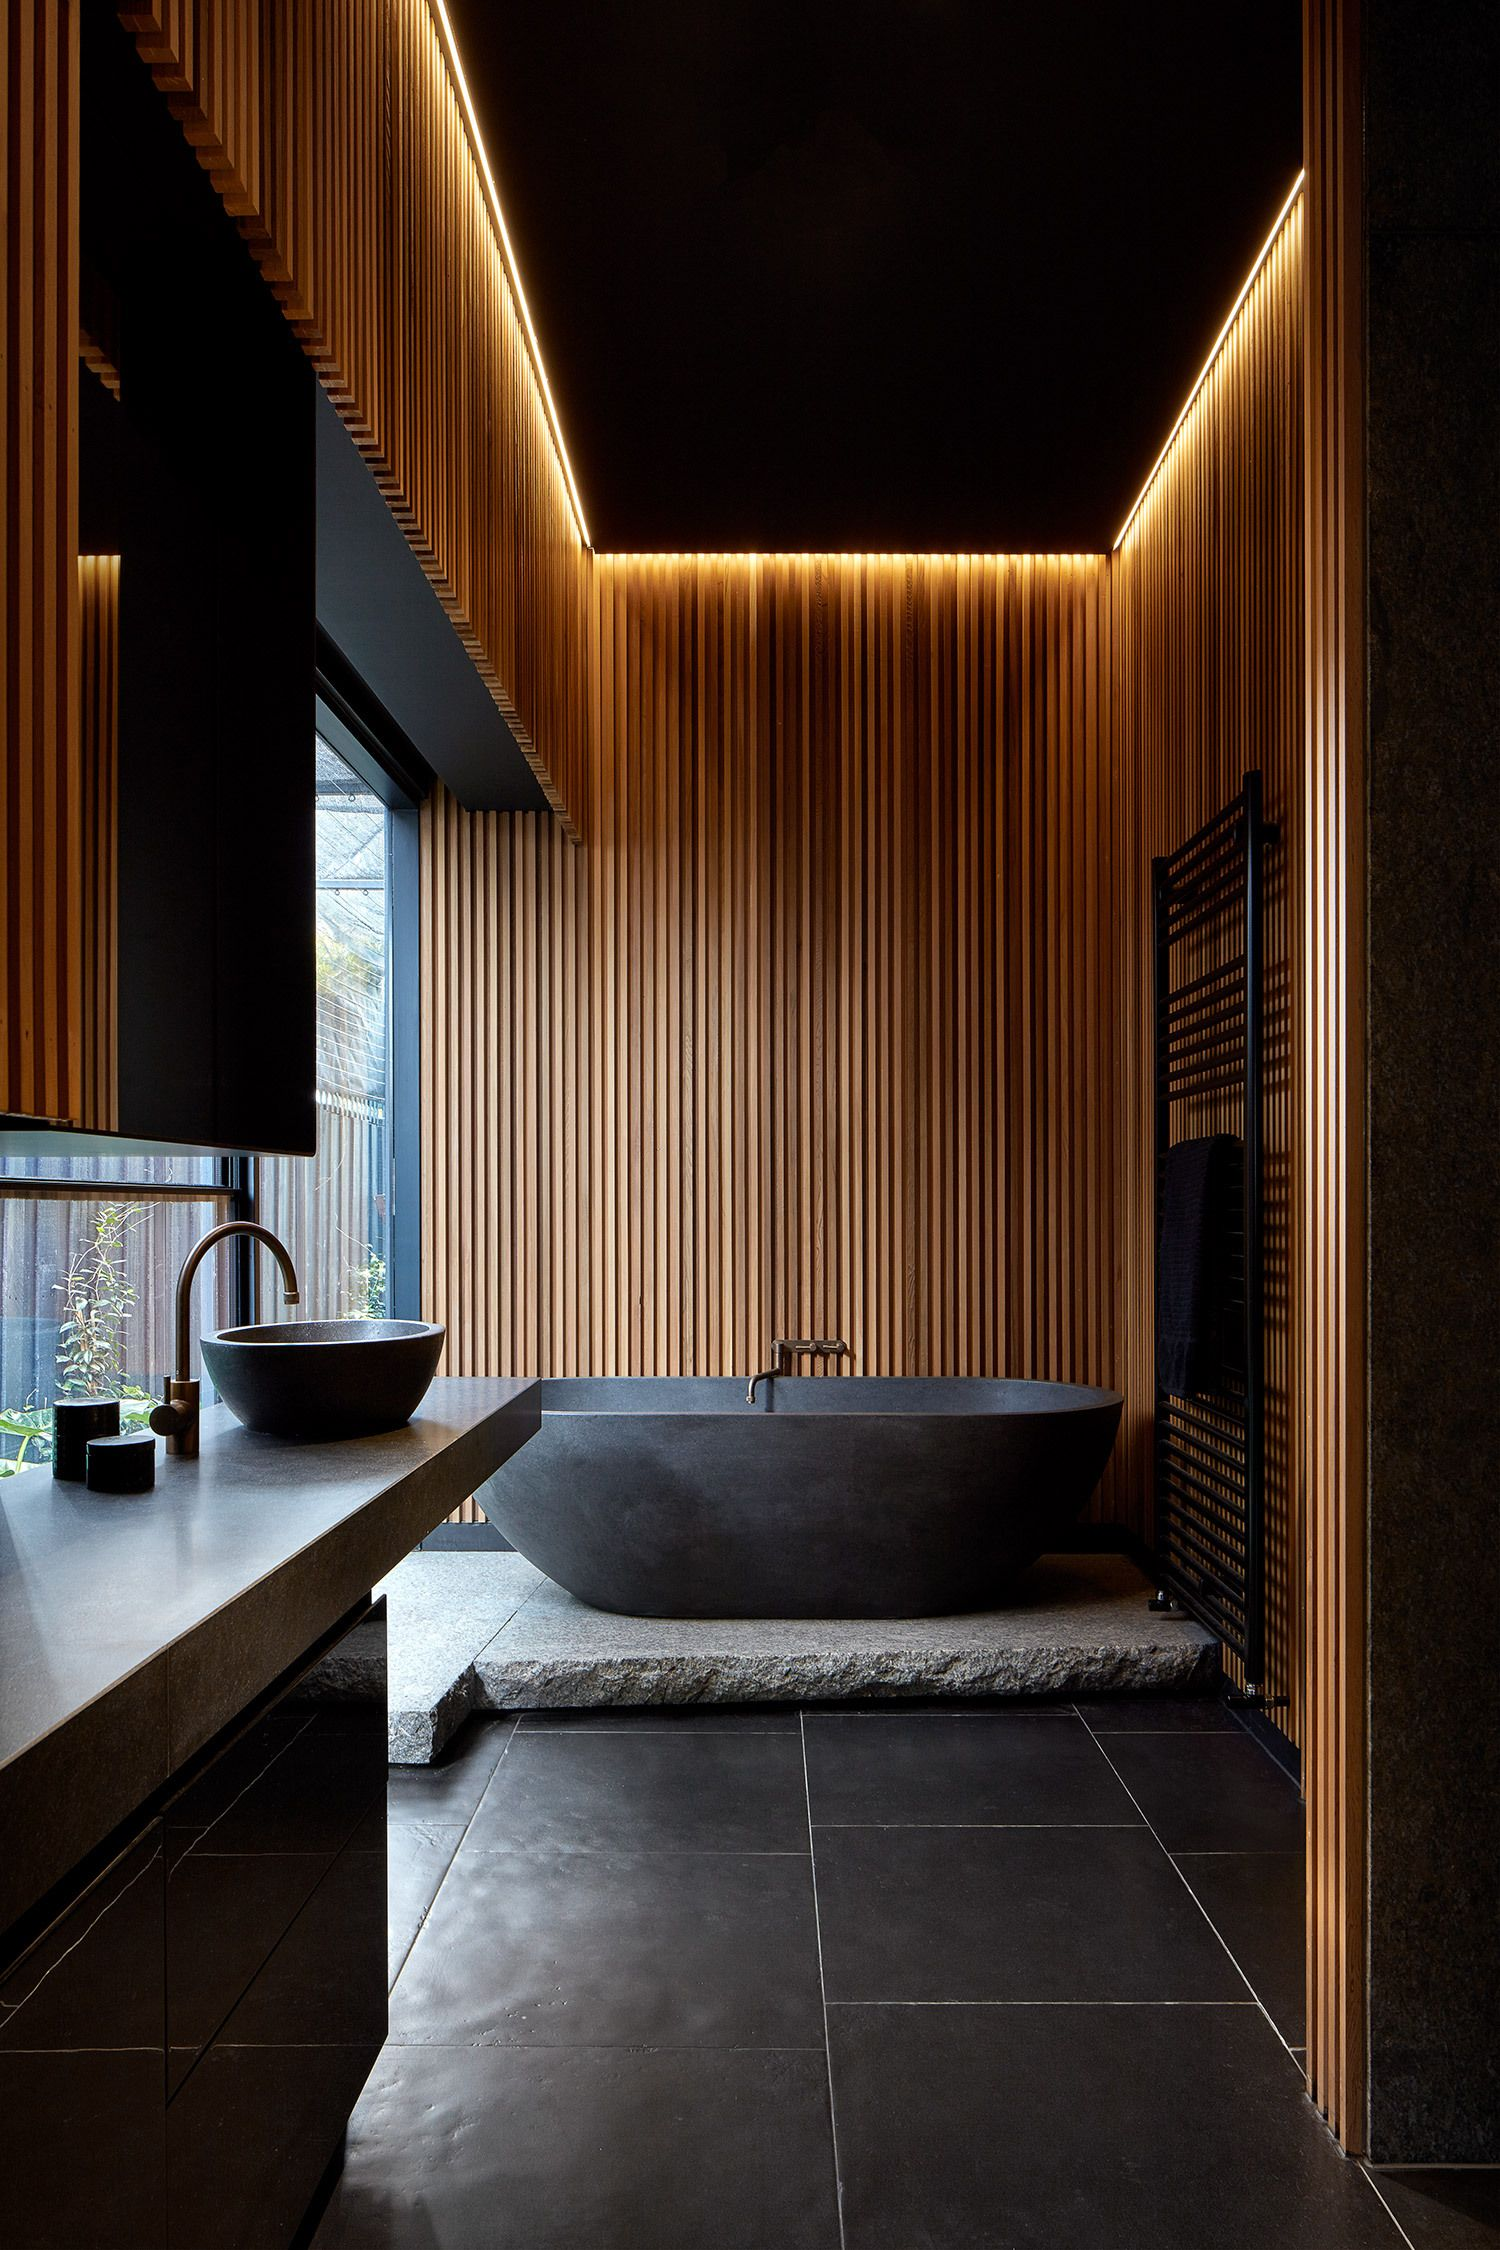 Dark-wood-and-natural-stone-elements-give-the-bathroom-a-stunning-visual-appeal